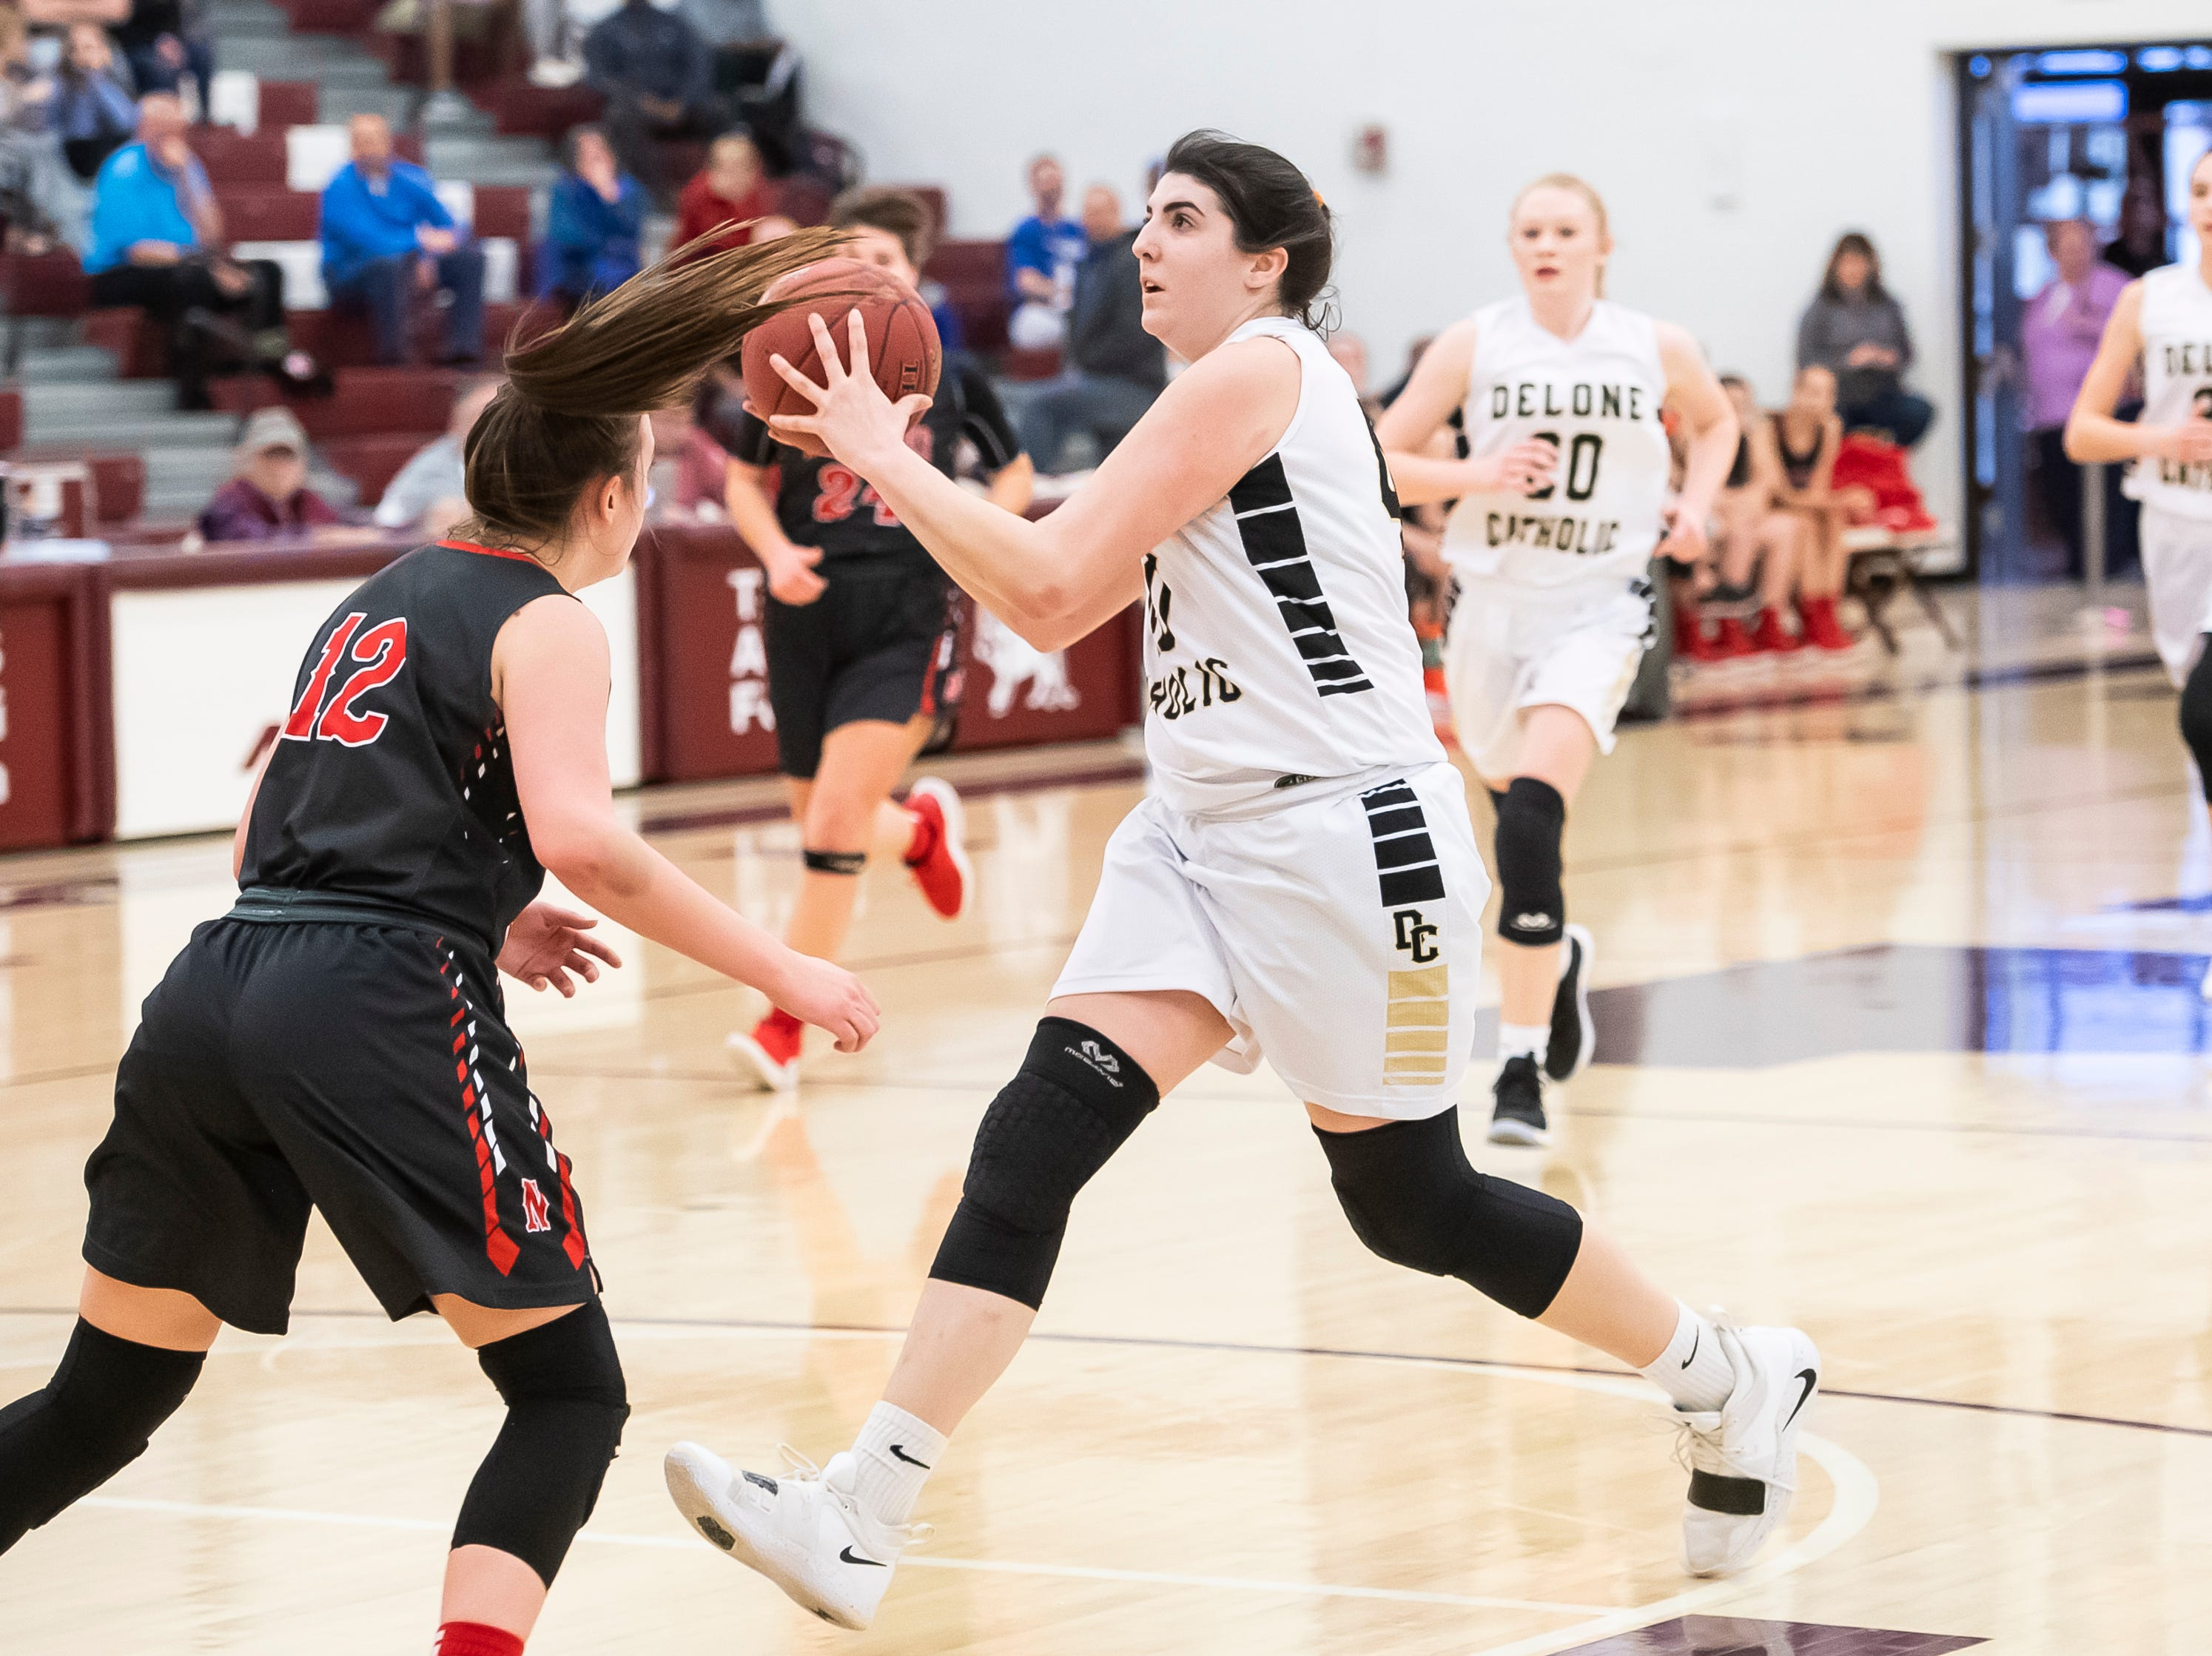 Delone Catholic's Bradi Zumbrum prepares to shoot a layup during a PIAA 3A quarterfinal game against Neshannock in Altoona, Pa., on Friday, March 15, 2019. The Squirettes won 50-41.